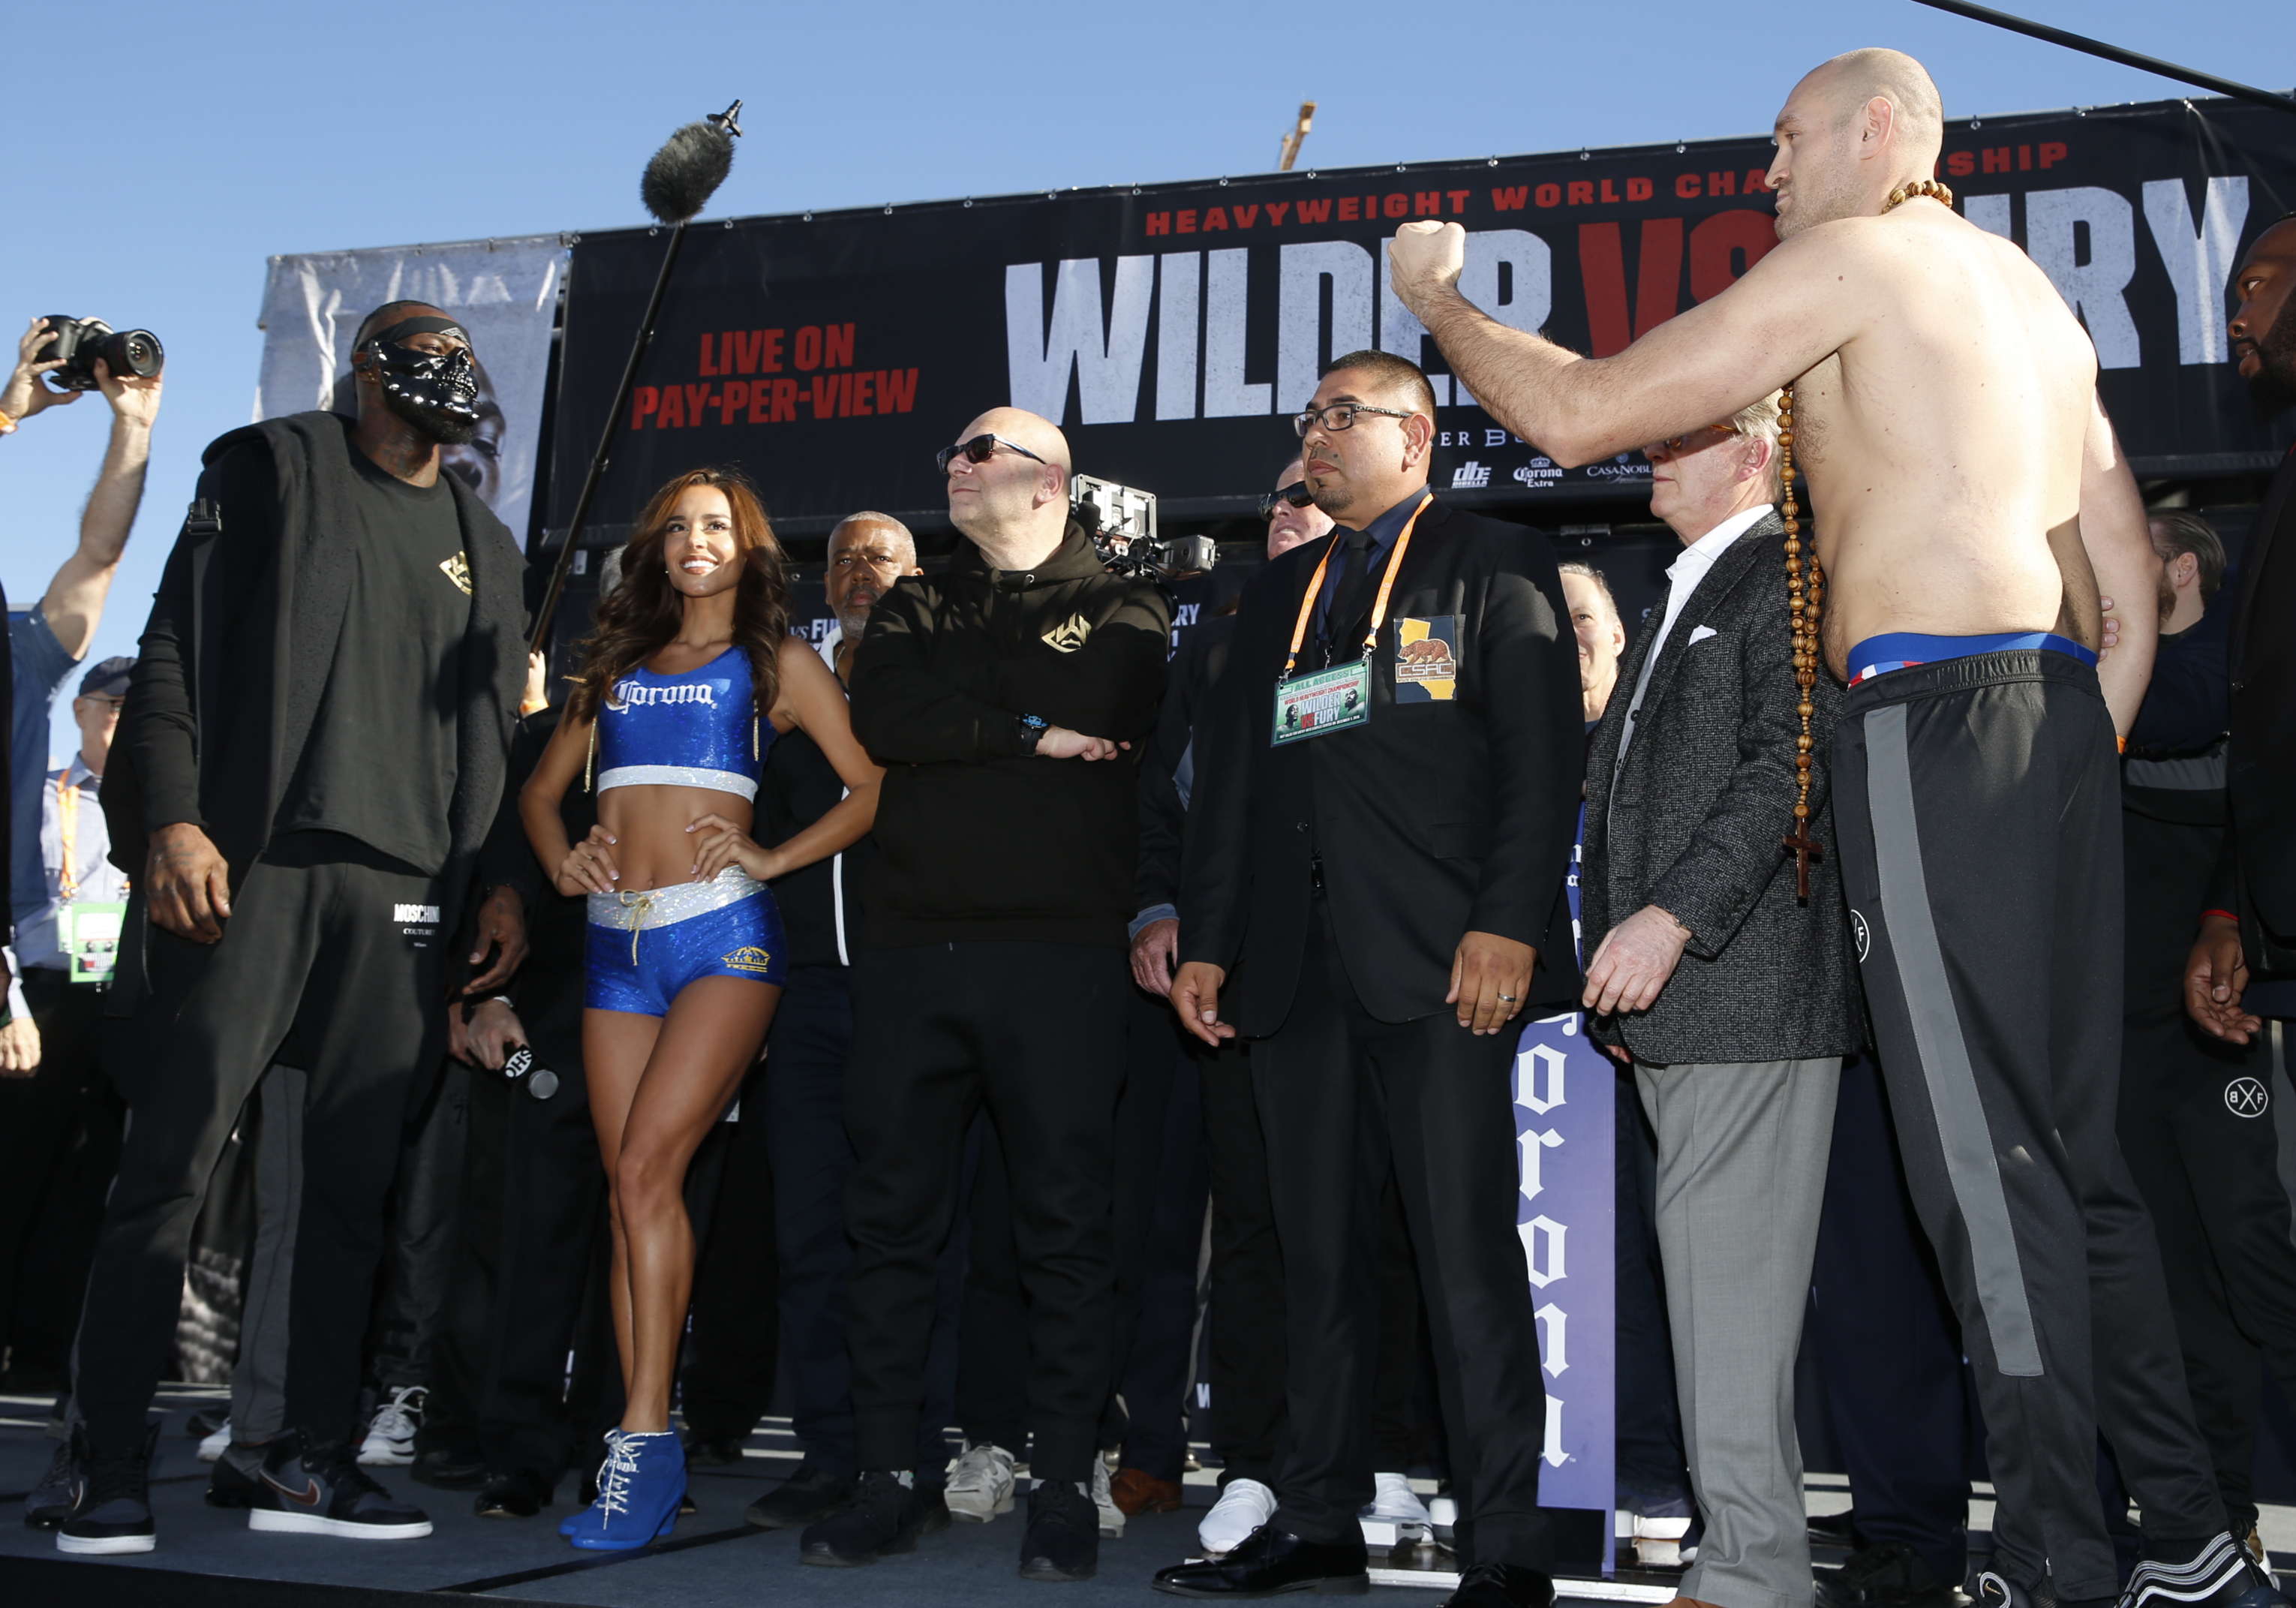 Wilder and Fury were kept apart at the weigh in. Image: PA Images